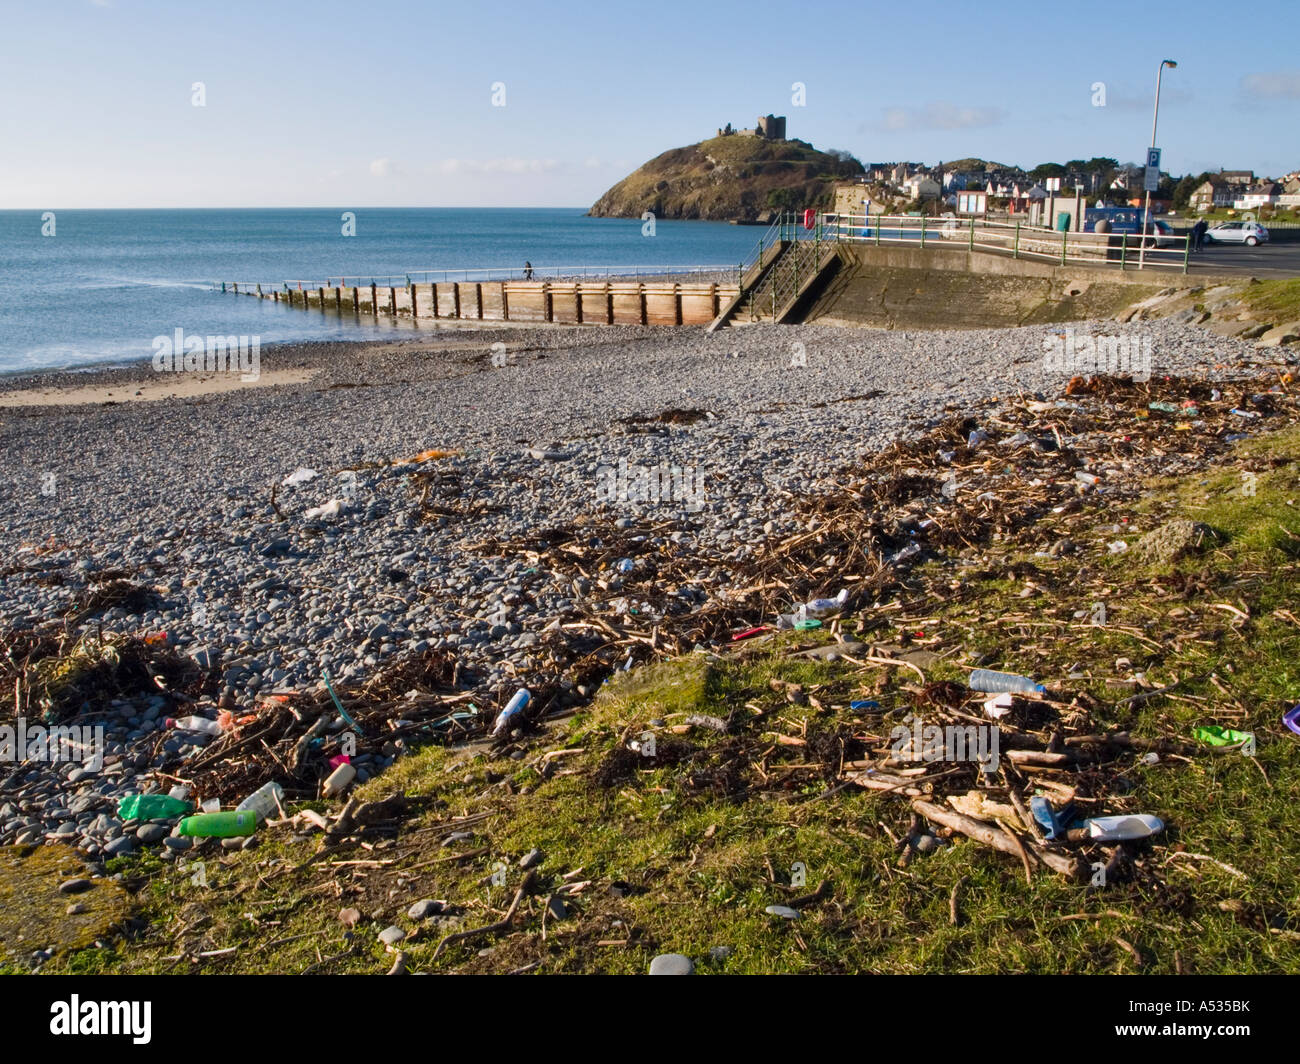 Flotsam and jetsam rubbish on beach littered with plastic bottles cans nylon rope washed up on shore Criccieth Gwynedd - Stock Image